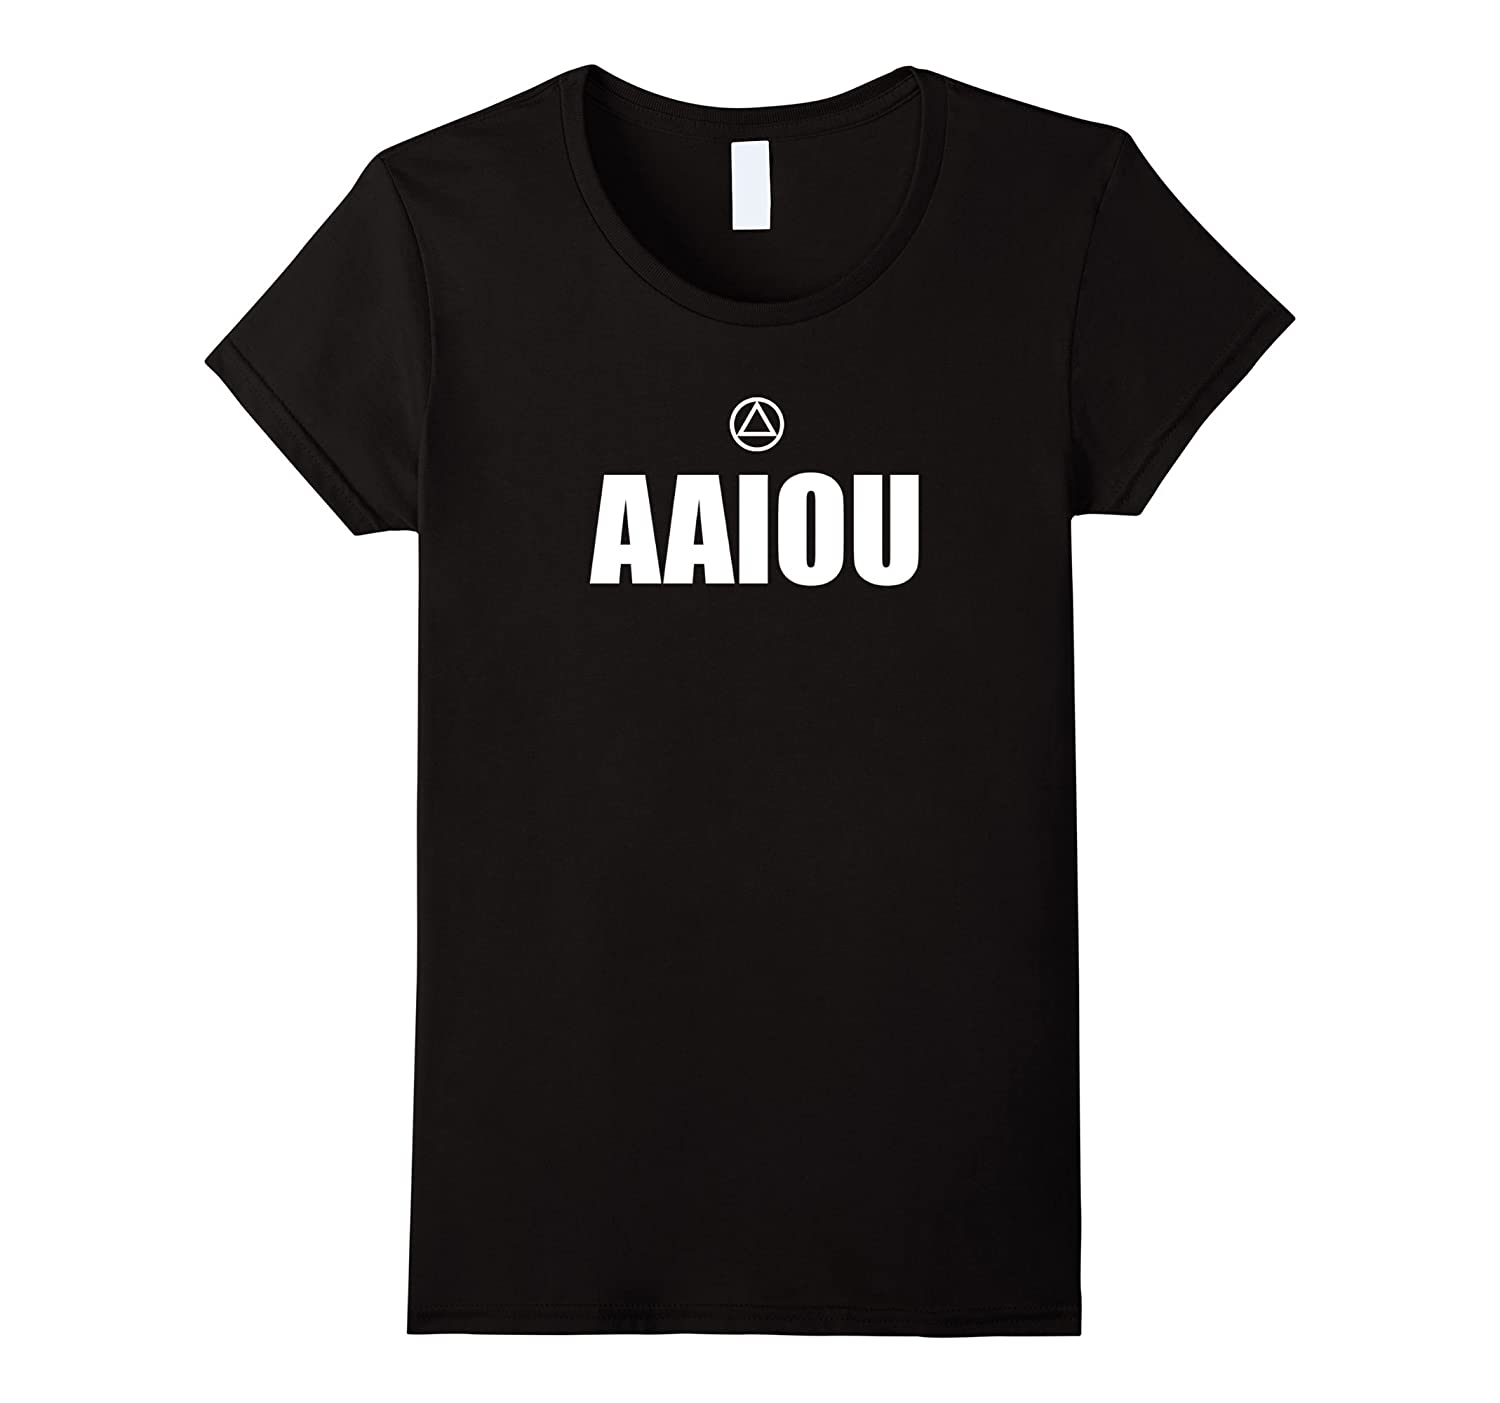 'AAIOU' Alcoholics Anonymous12 Step Recovery Slogan T Shirt